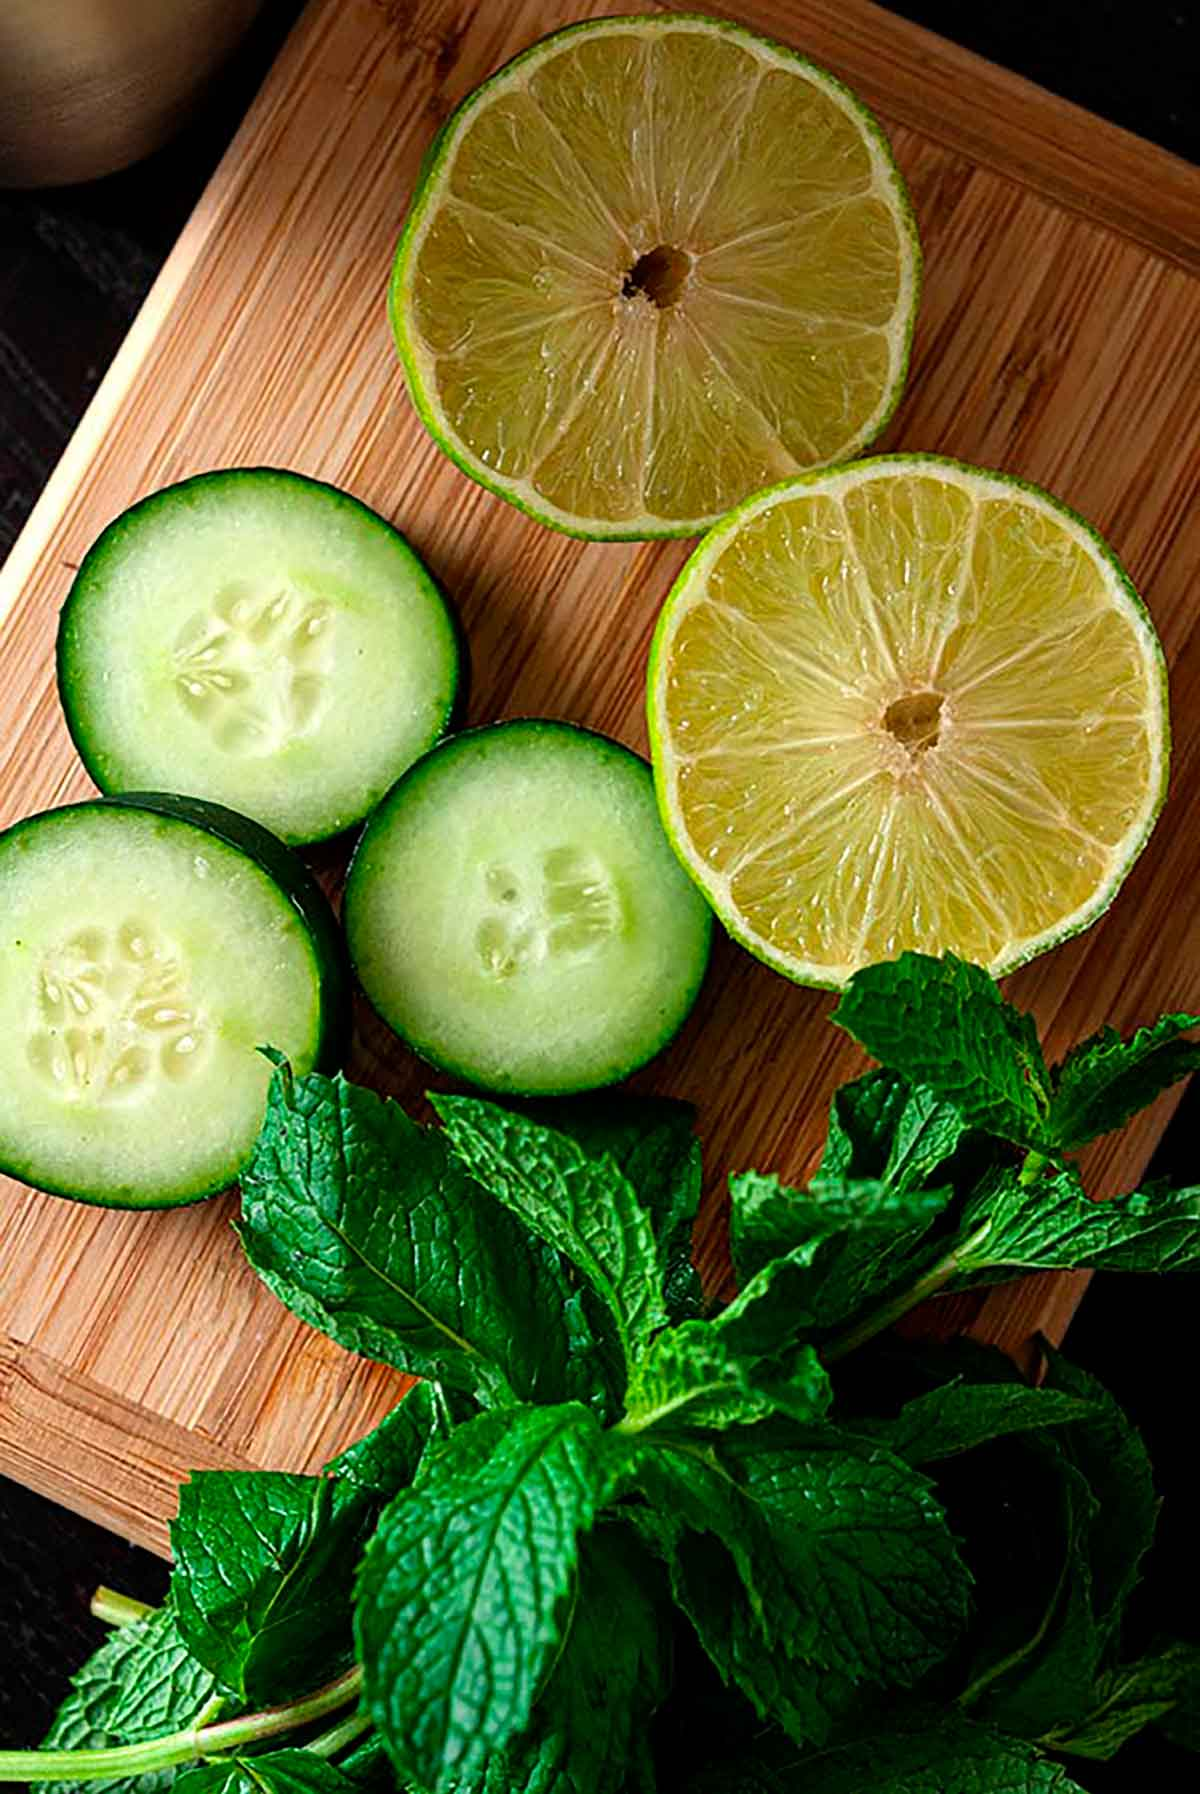 A small cutting board with 3 cucumber slices, 2 lime slices and a sprig of fresh mint.